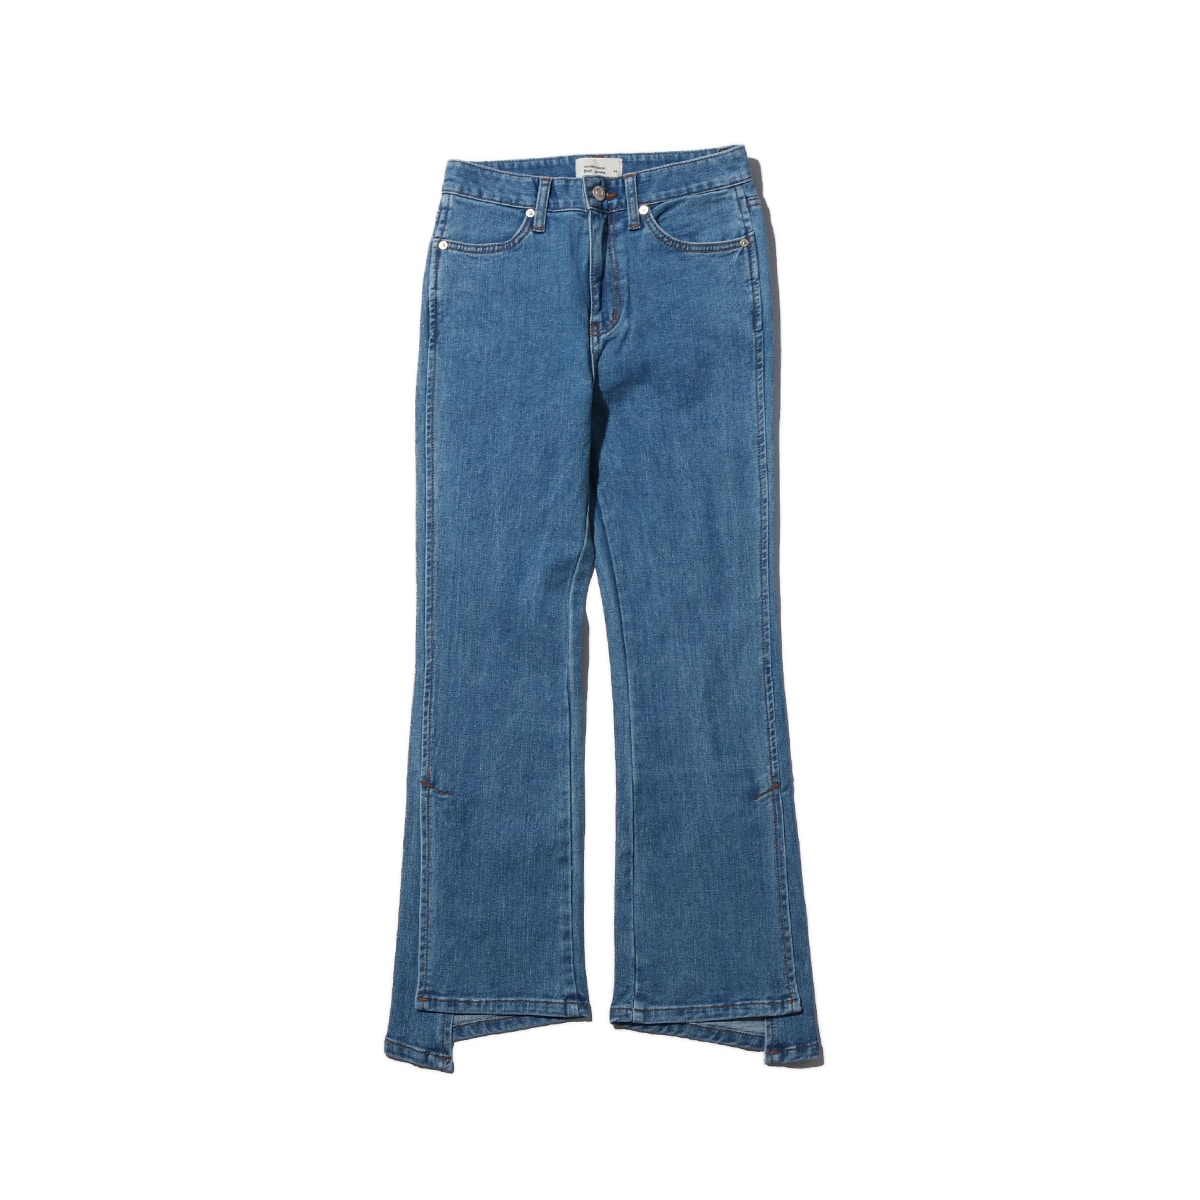 Andersson Bell UNBALANCE SLIT CROP JEANS BLUE 19FA-I_photo_large